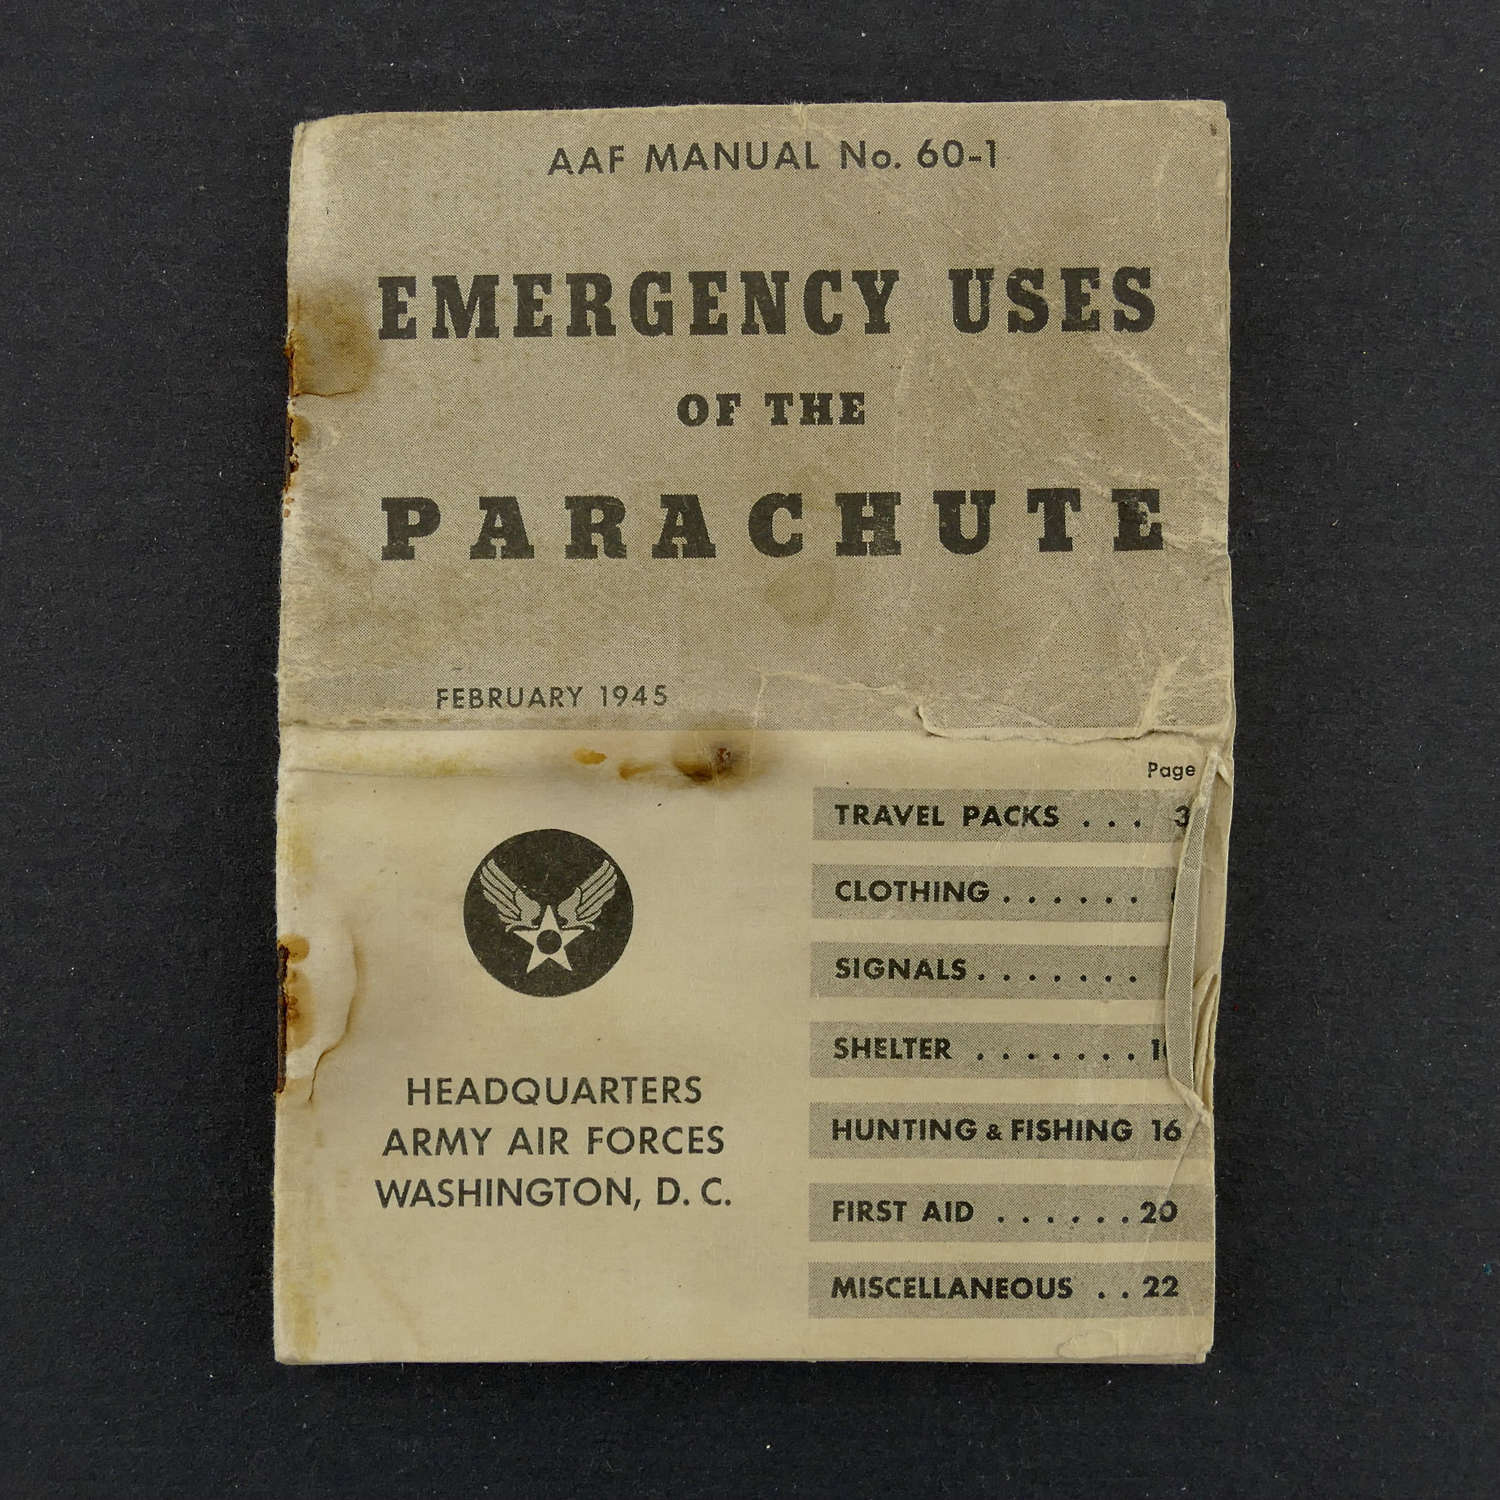 USAAF emergency uses of parachute booklet